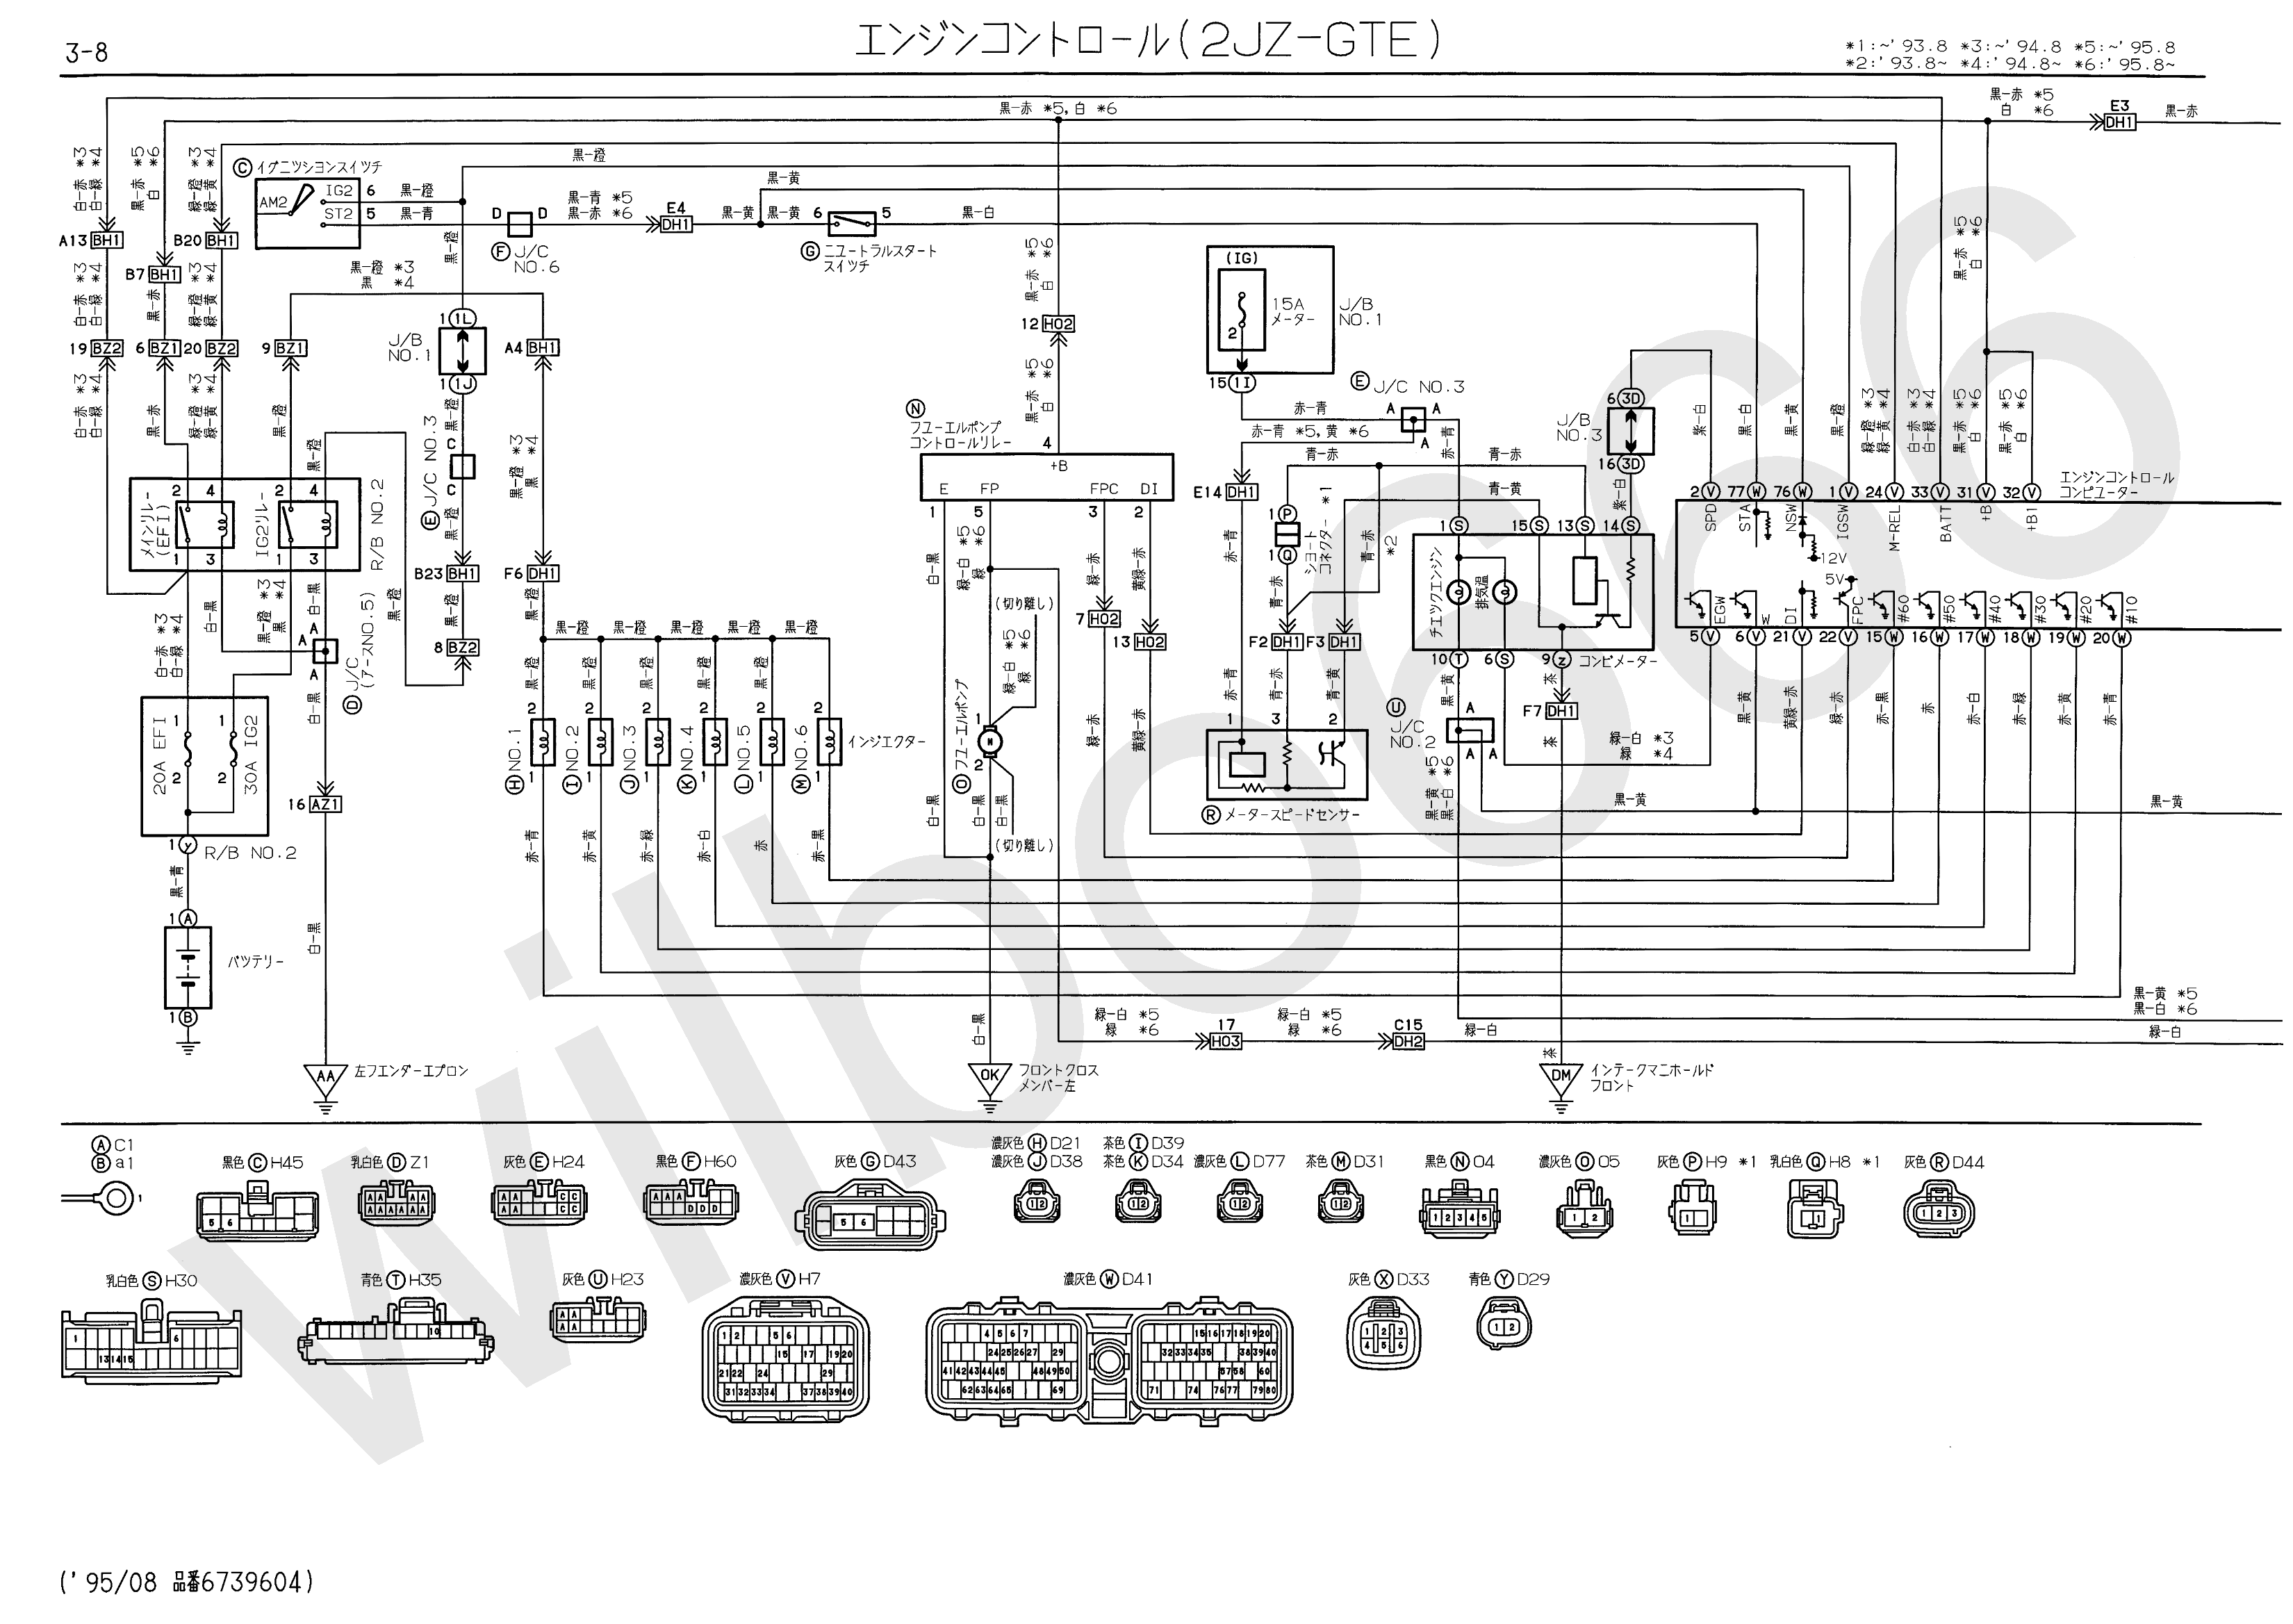 1994 s10 wiring diagram pdf wiring diagram centre wrg 5568 2002 mustang 3 8l engine diagram1994 s10 wiring diagram pdf 21